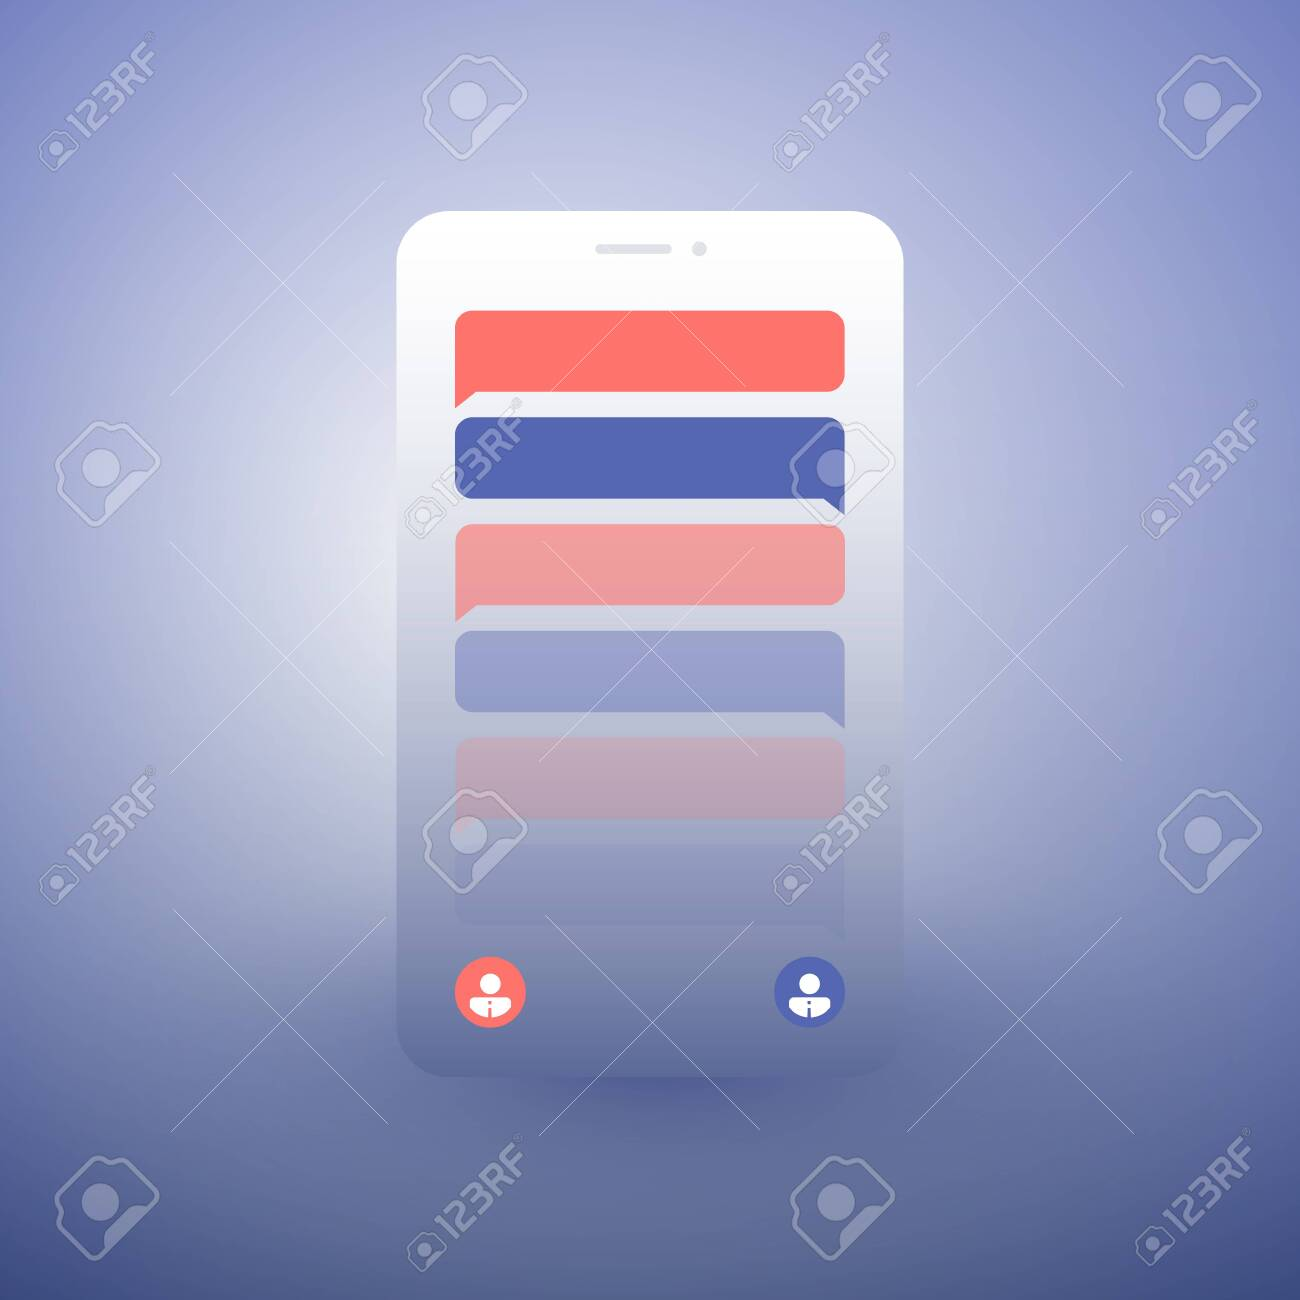 Abstract Chat App Design Concept Global Mobile Communication Royalty Free Cliparts Vectors And Stock Illustration Image 126288311